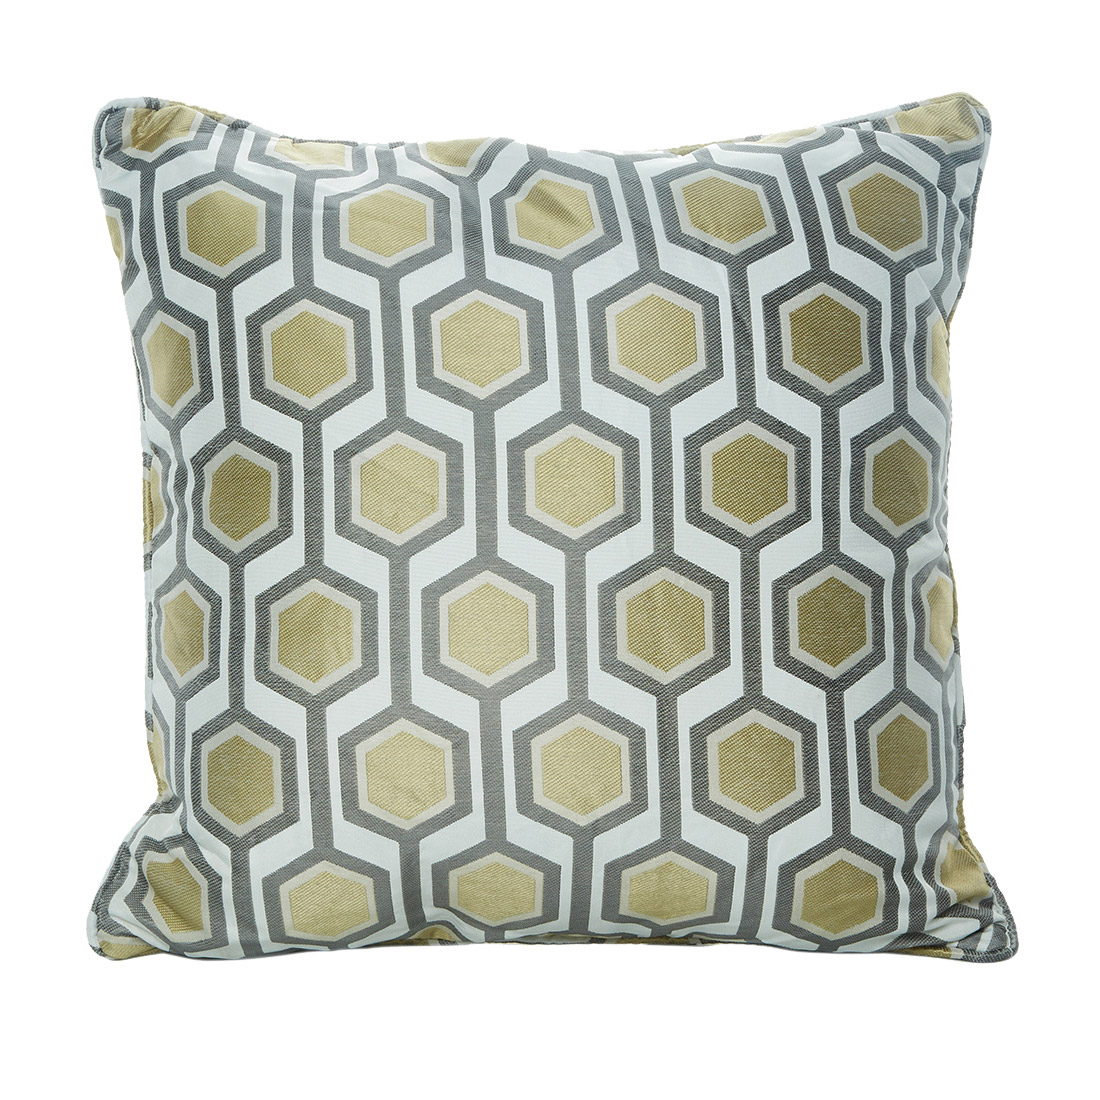 Artesan Ochre Cushion